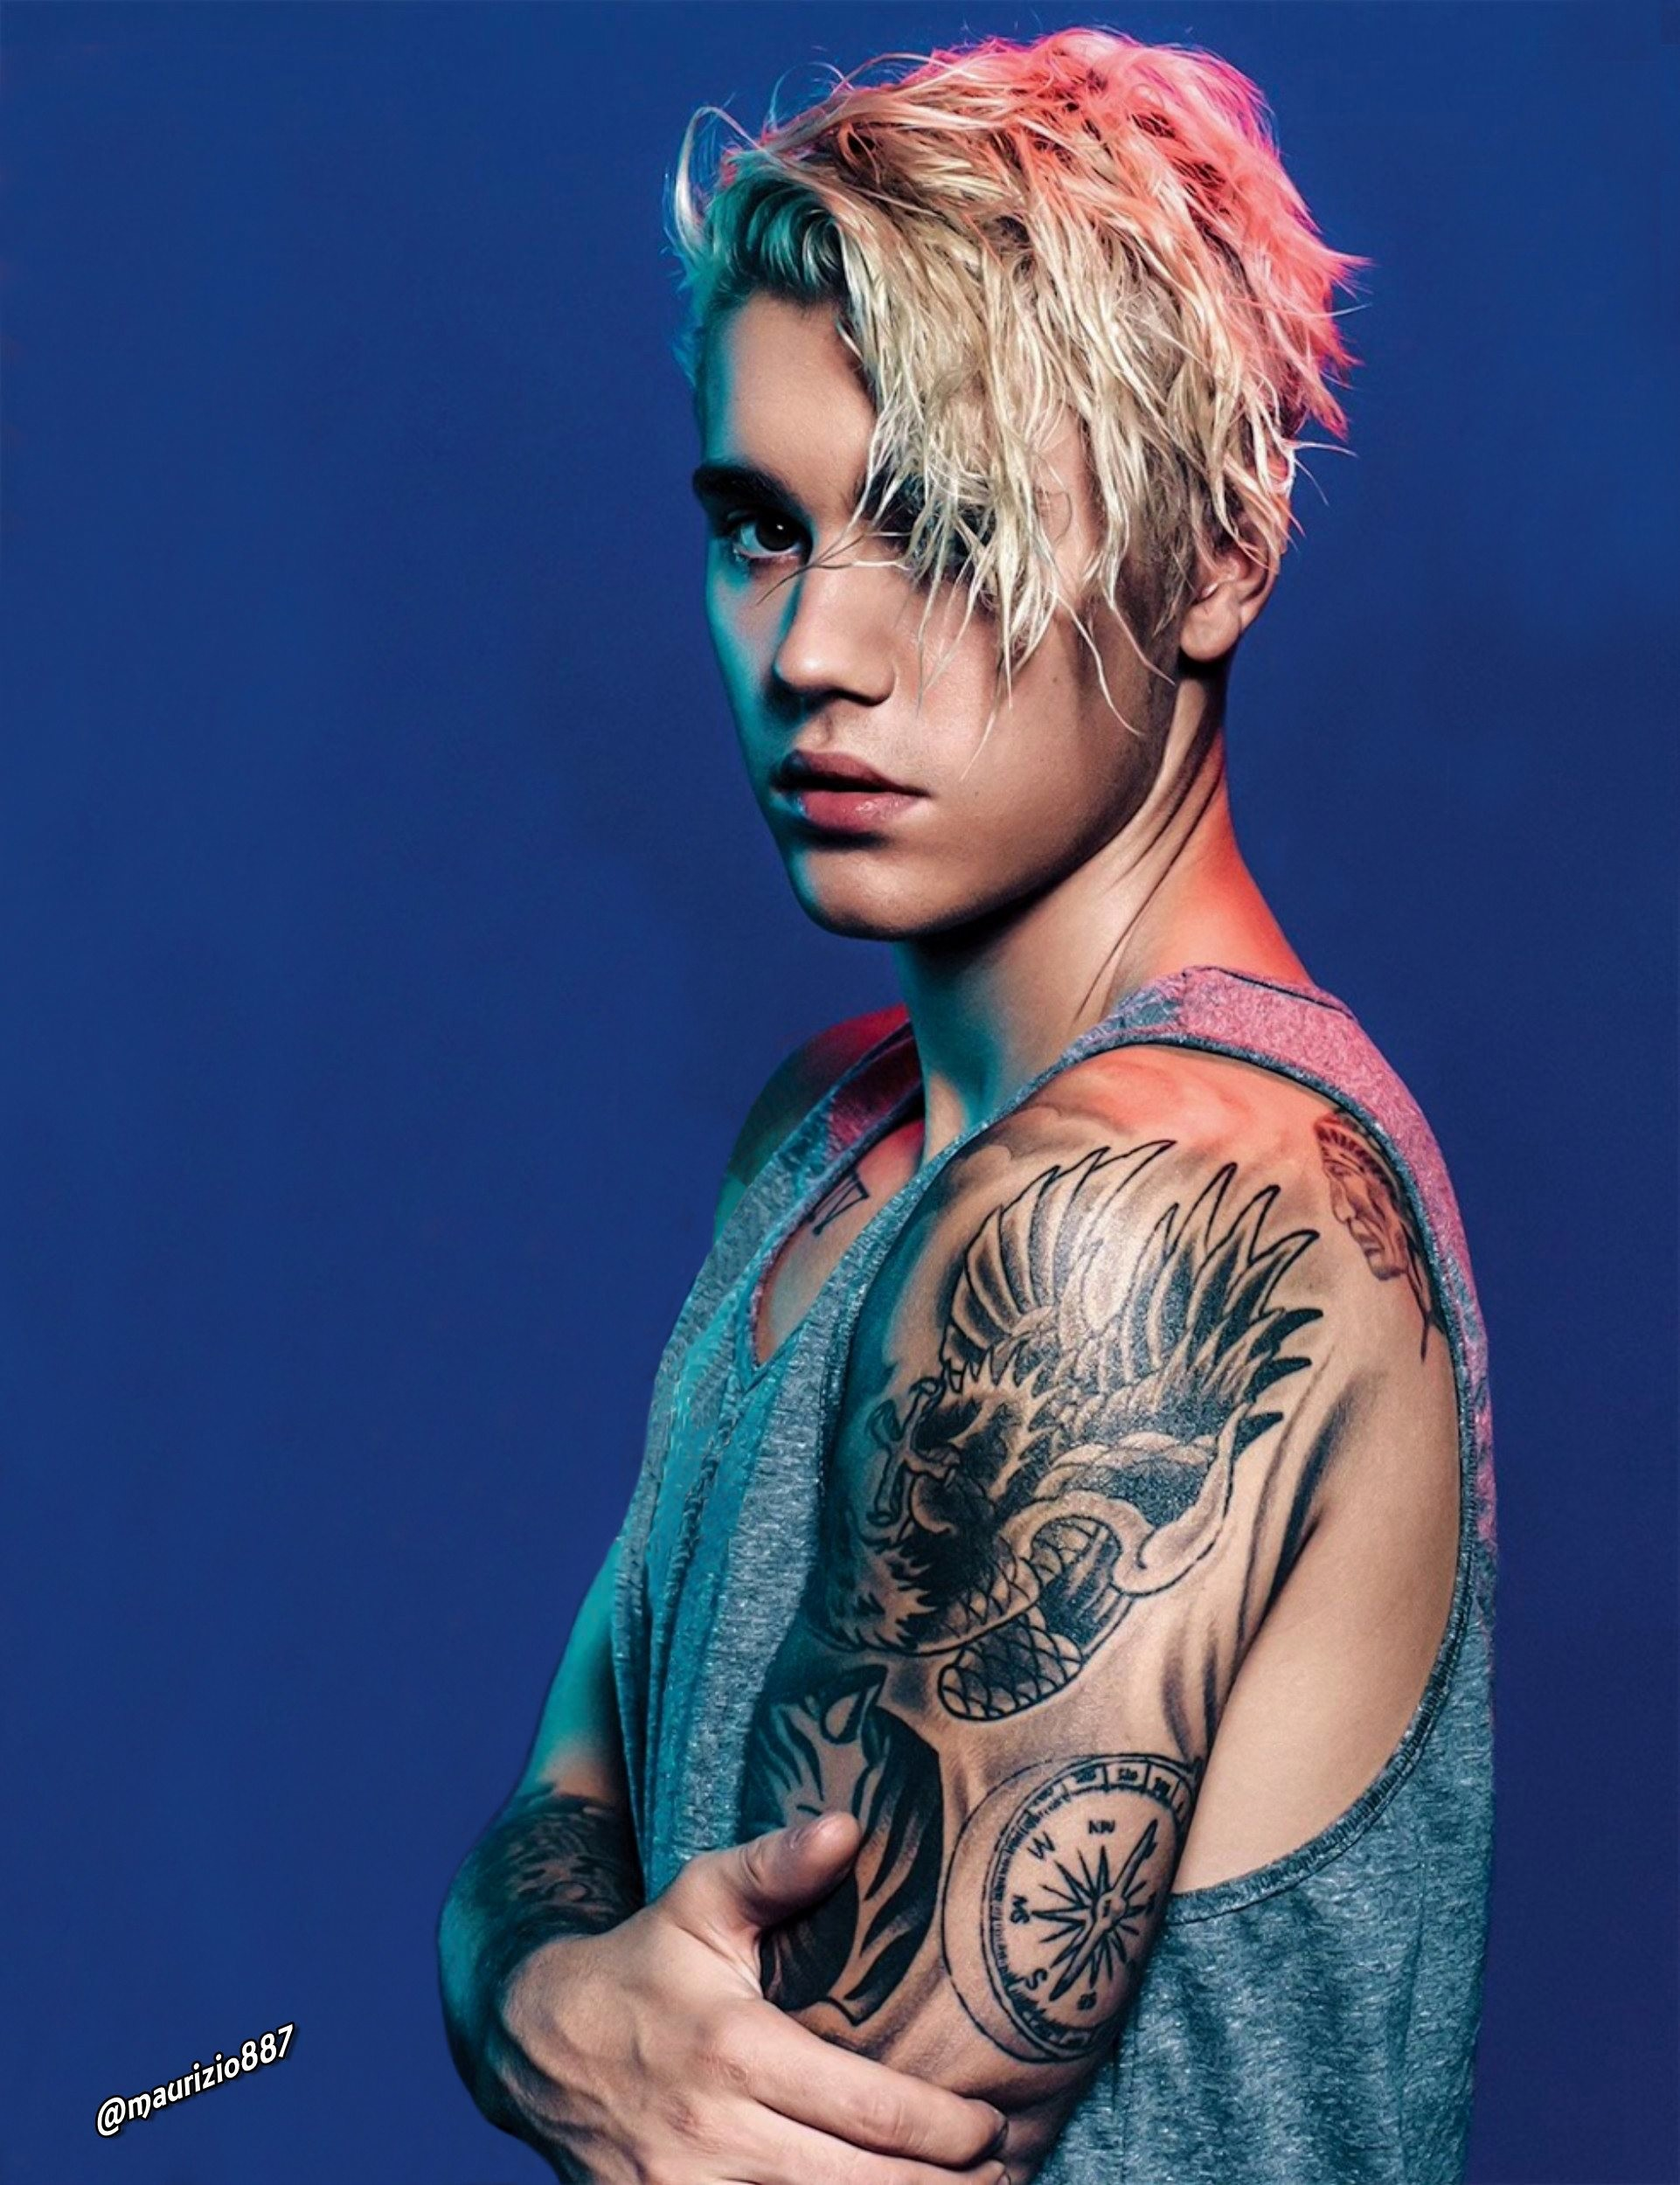 justin bieber new wallpapers 2018 67 images